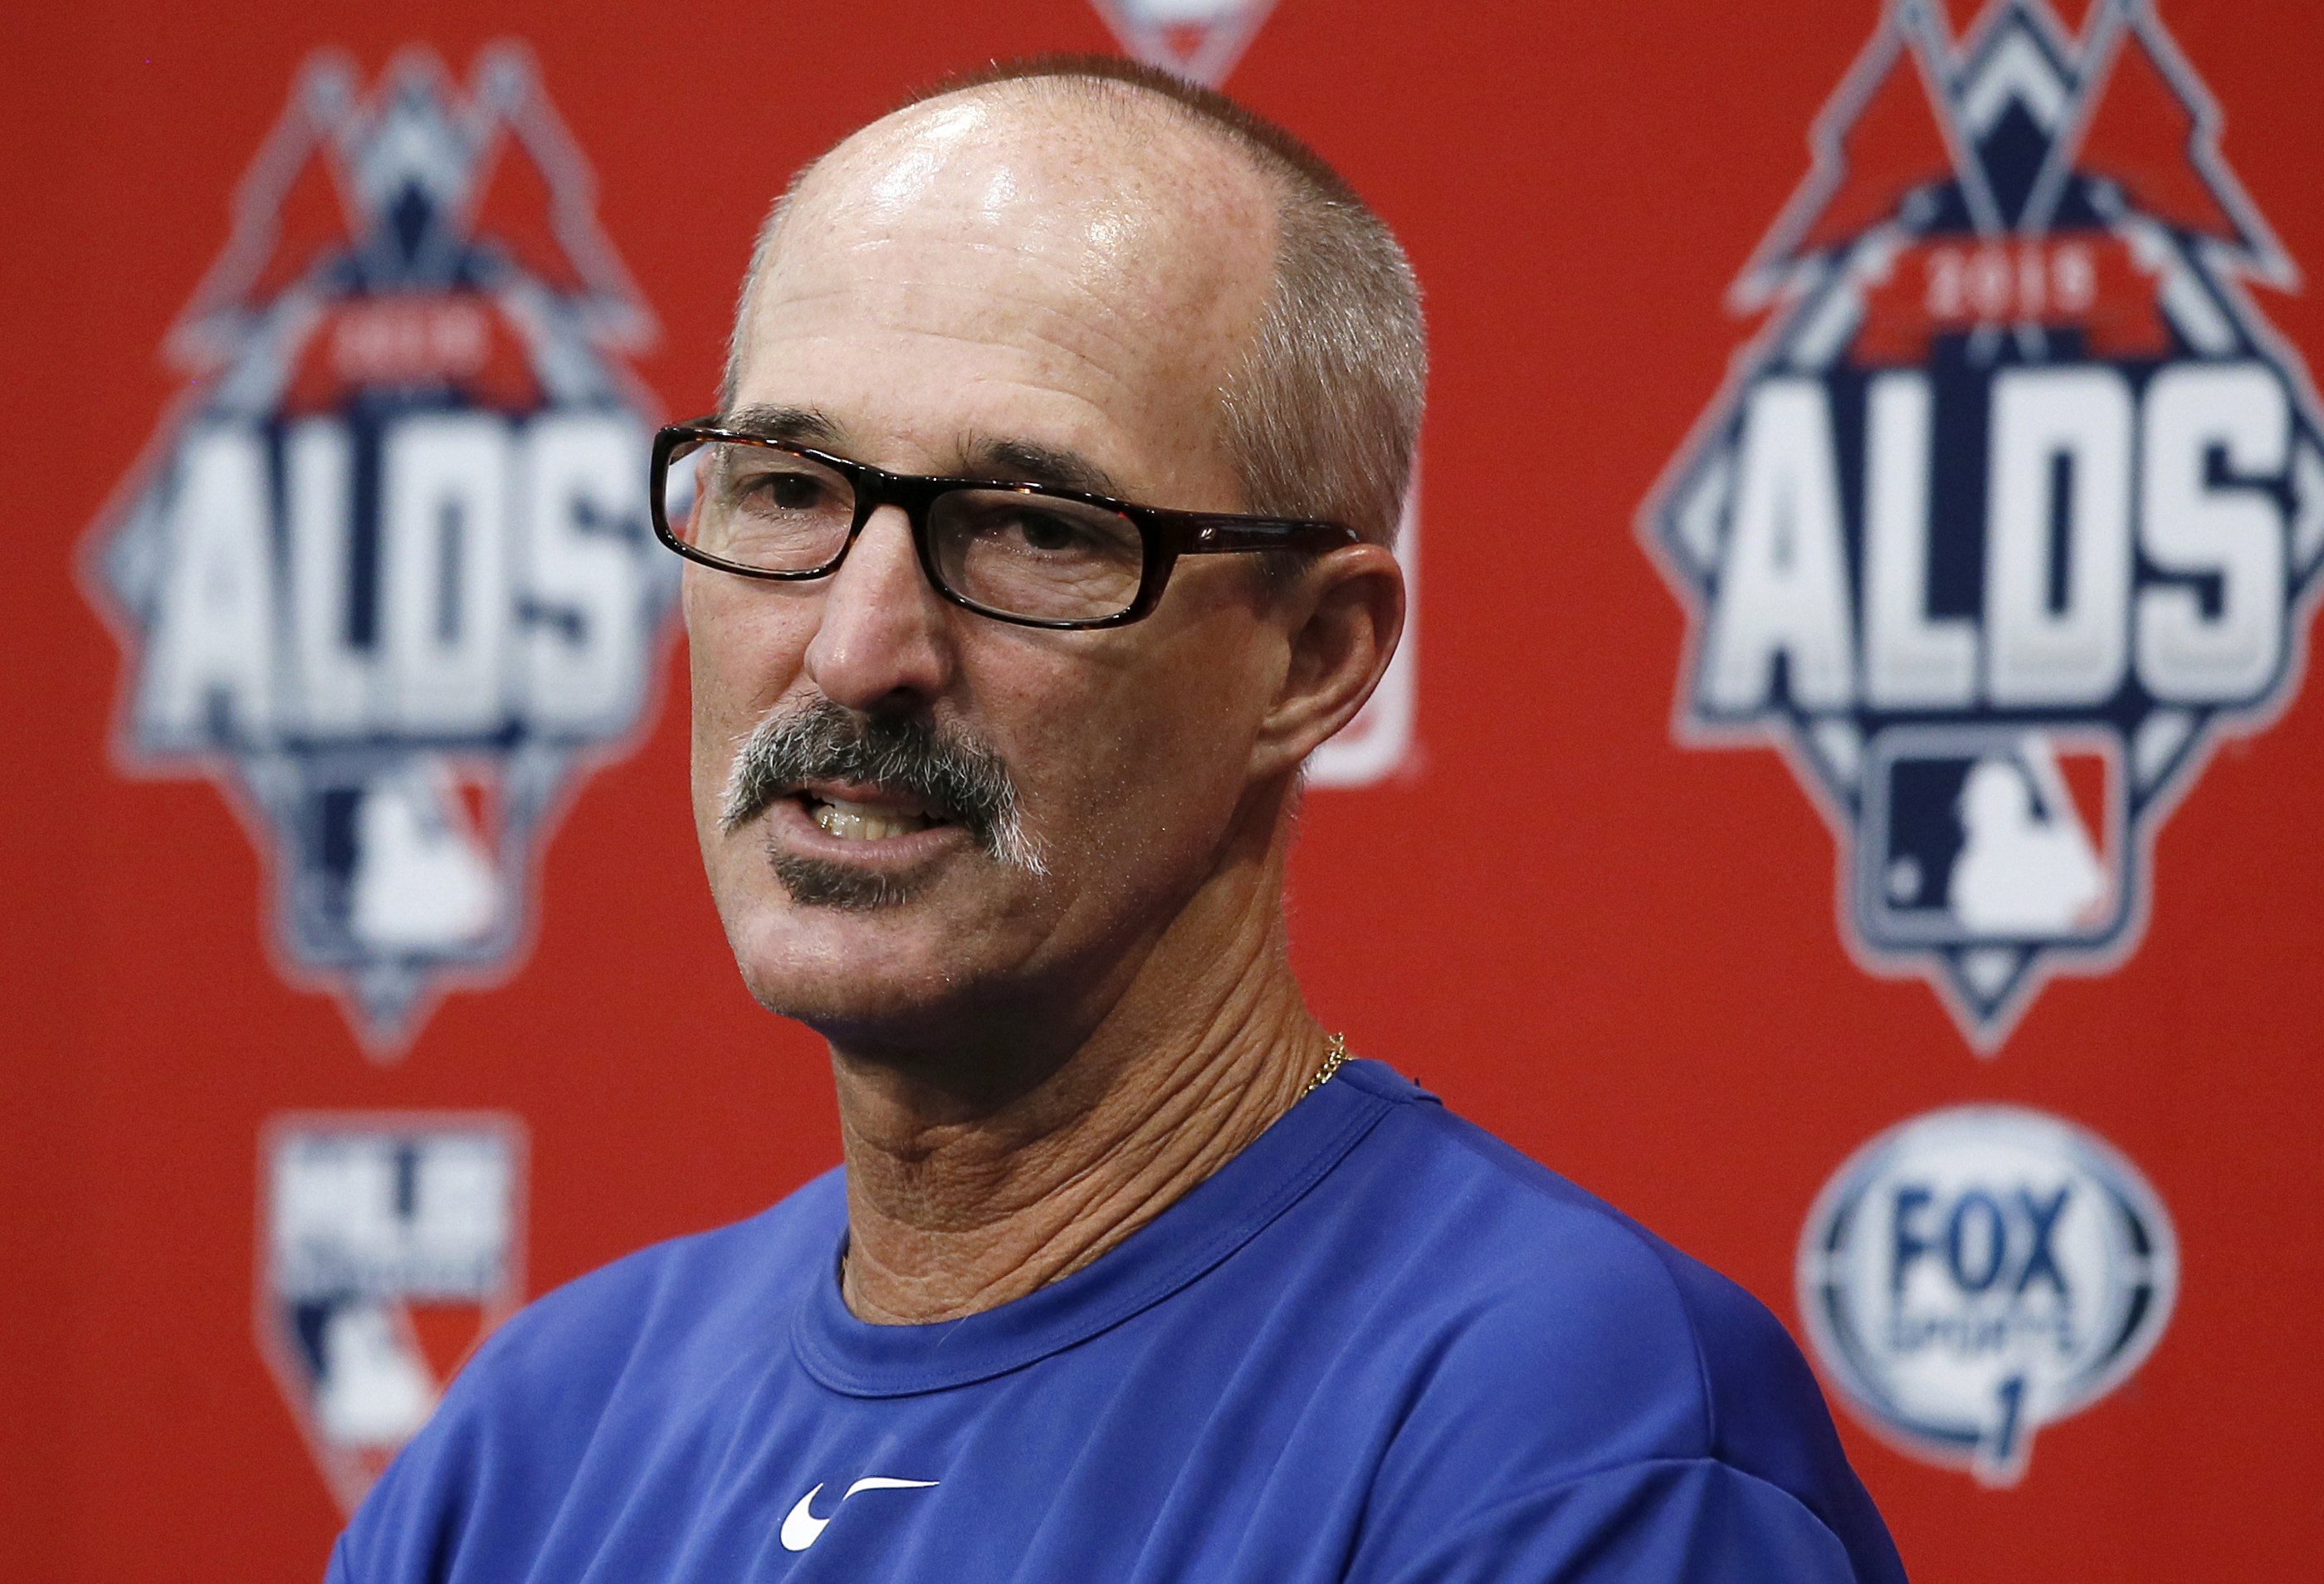 Mike Maddux to take reins as Nats' pitching coach